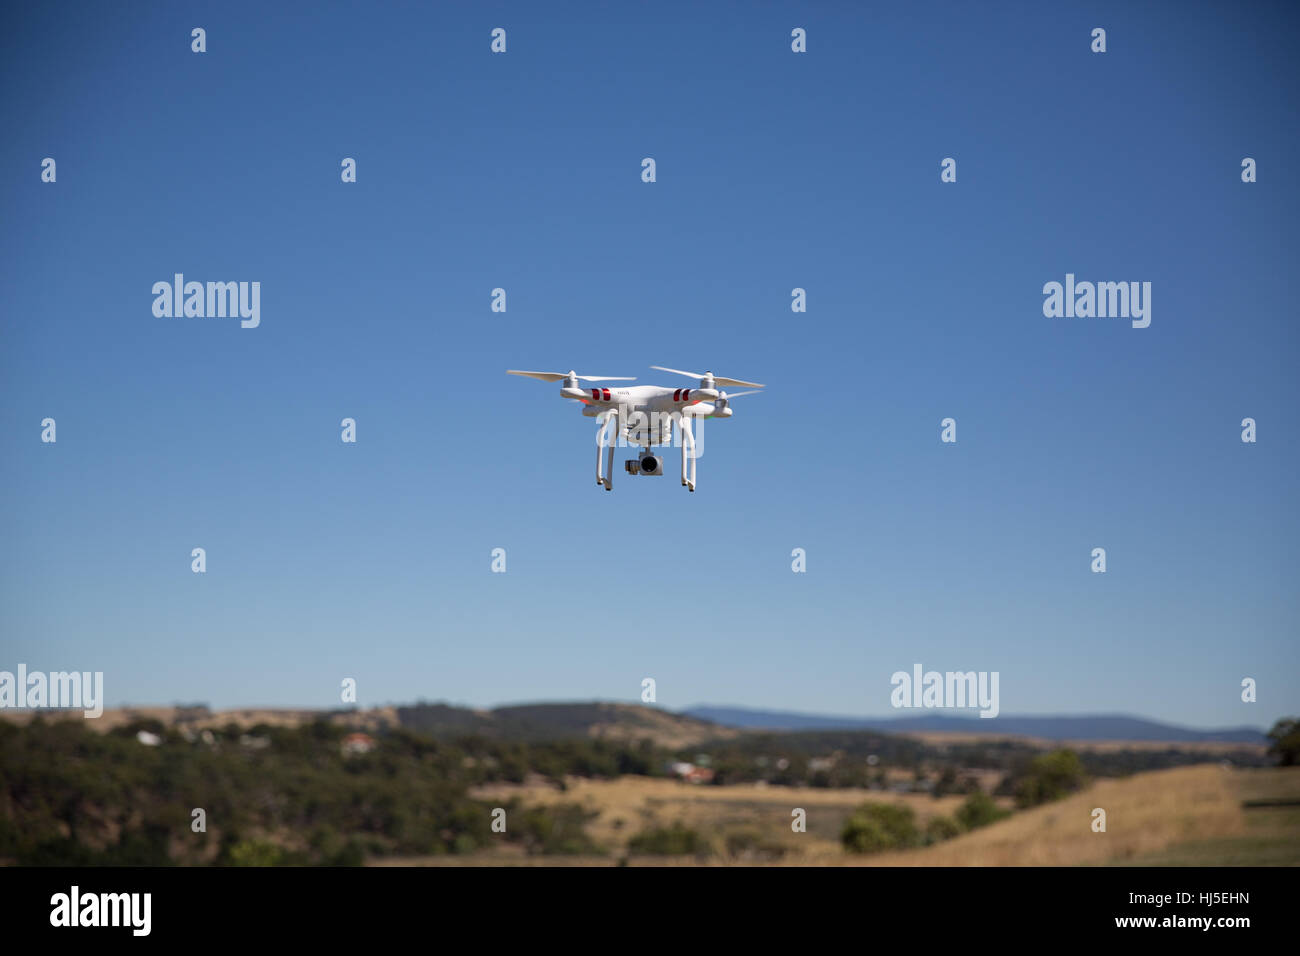 Unmanned Aerial Vehicle (UAV) or Drone, safely flying in a field. - Stock Image